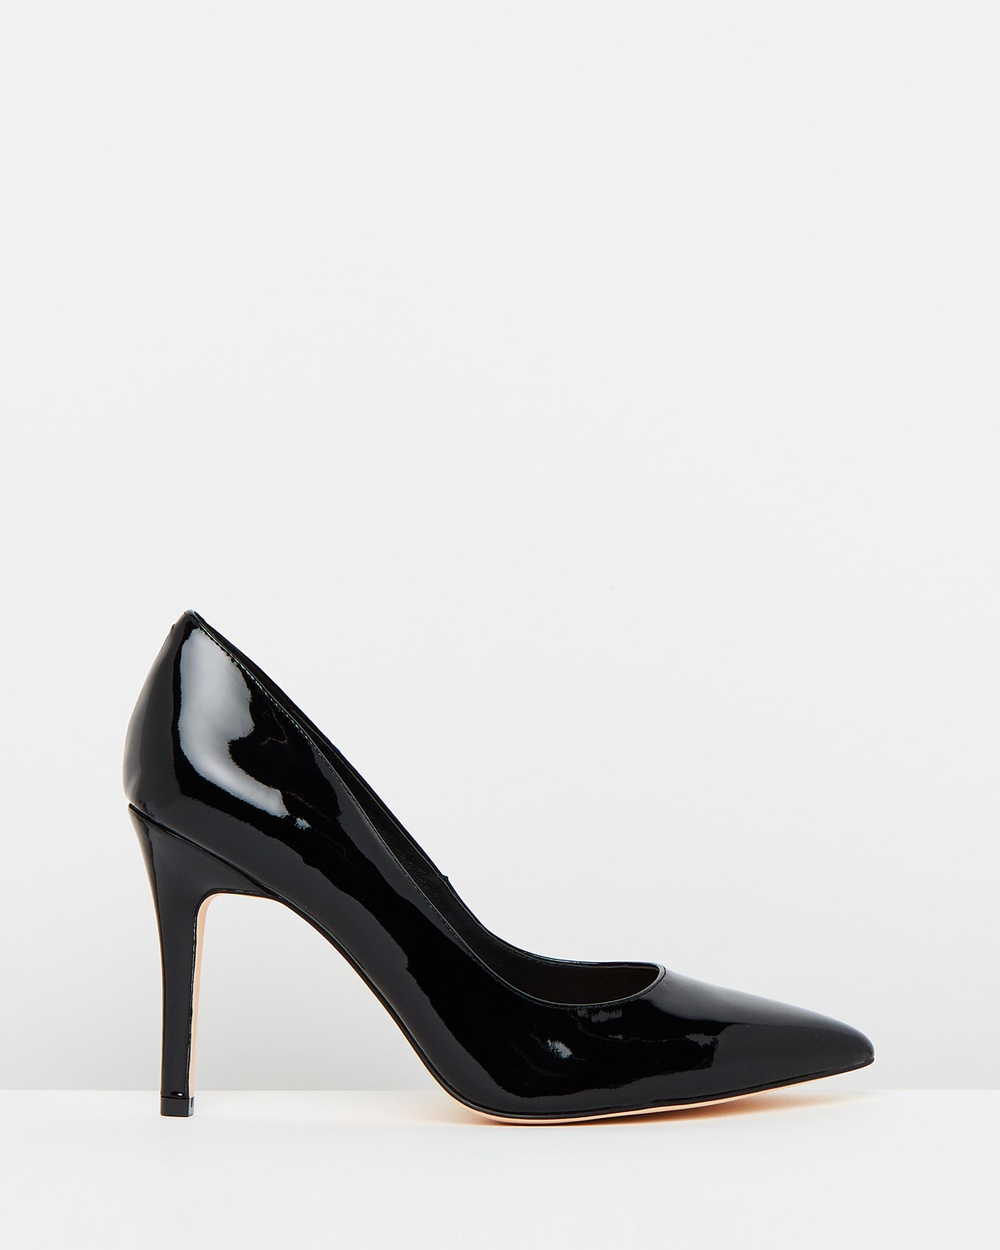 Atmos & Here ICONIC EXCLUSIVE Elaine Leather Pumps All Pumps Black Patent ICONIC EXCLUSIVE Elaine Leather Pumps